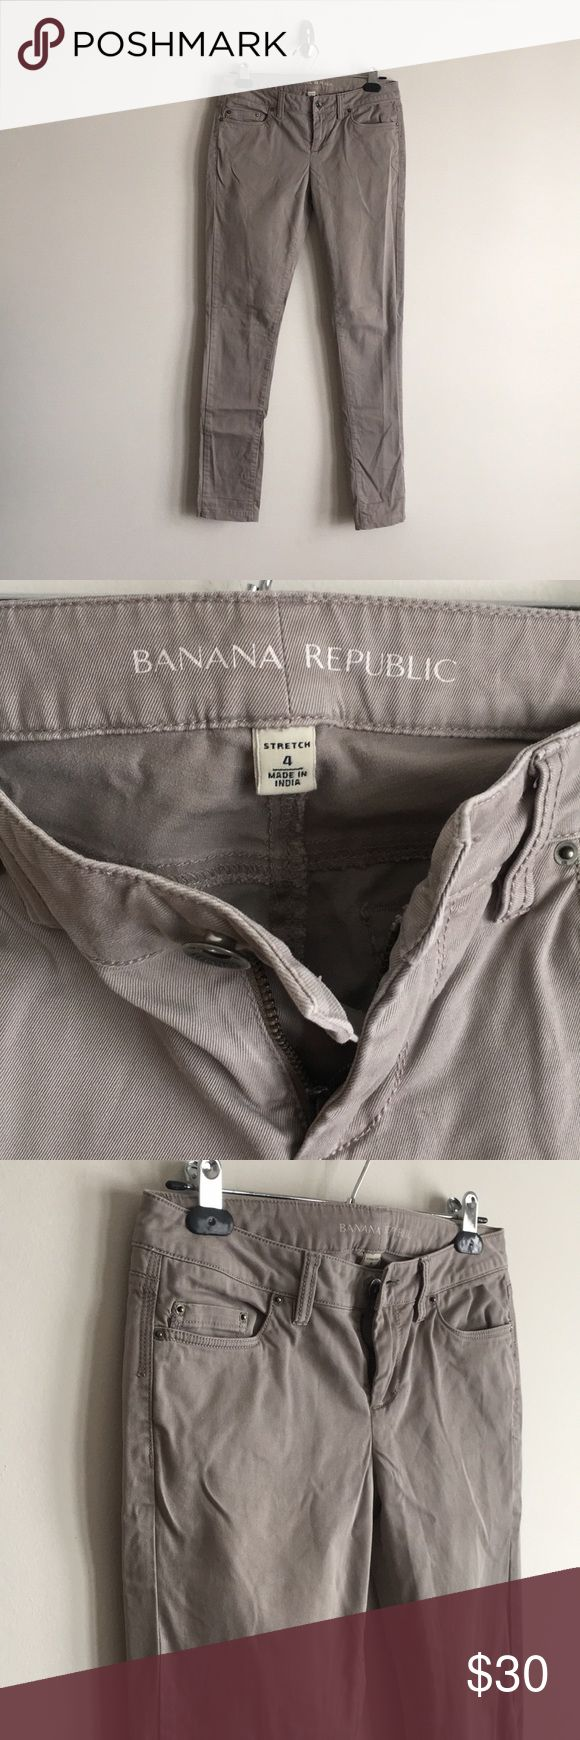 """BR Skinny Chinos Gently used with no major signs of wear. Only imperfections are a couple pulls below the back right pocket, pictured. Approximately 31"""" inseam. Grey-beige color. Please feel free to ask any questions 😊 Banana Republic Pants Skinny"""